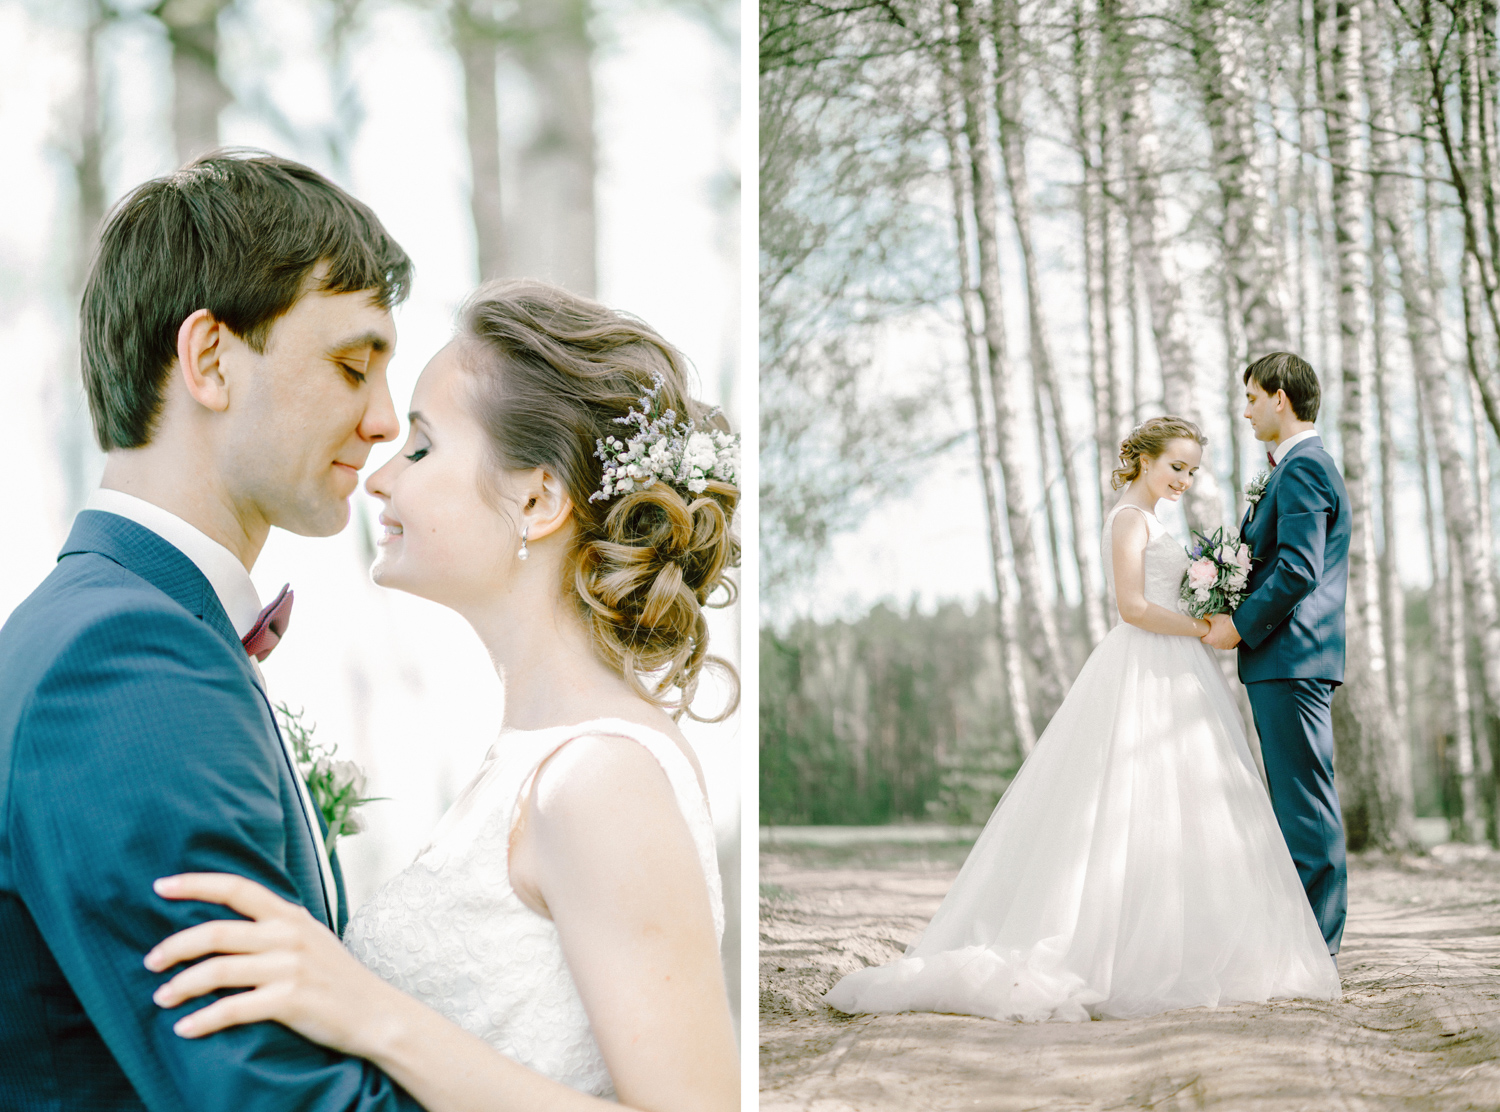 polinastudio.ru_wedding_ap-8